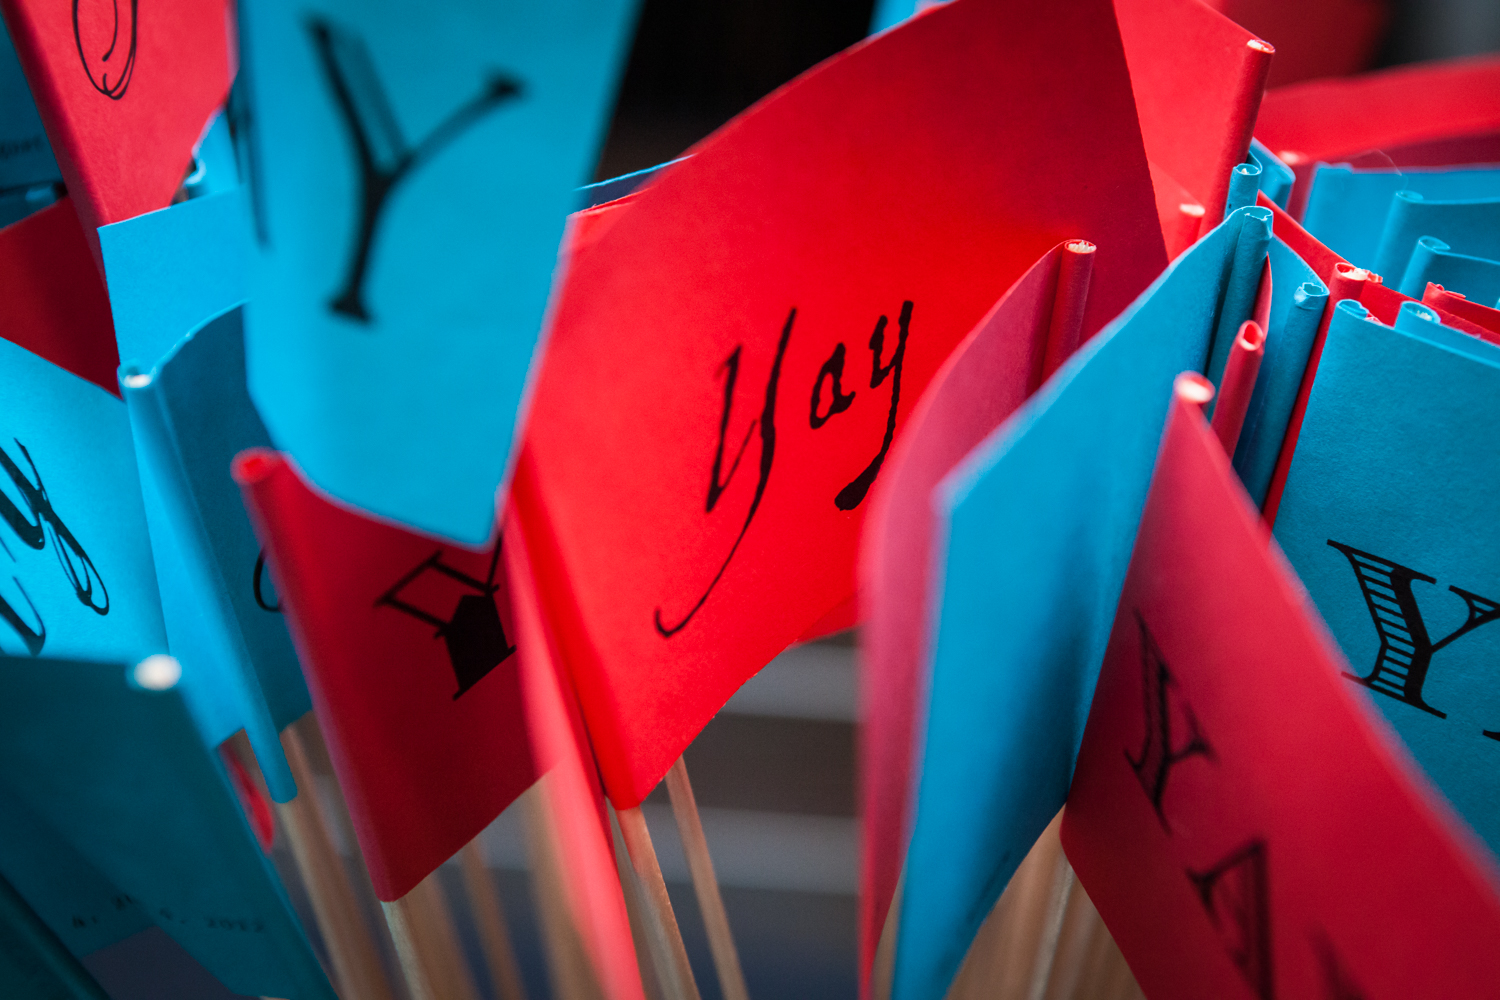 Close up on red and blue flags with the word 'Yay!'